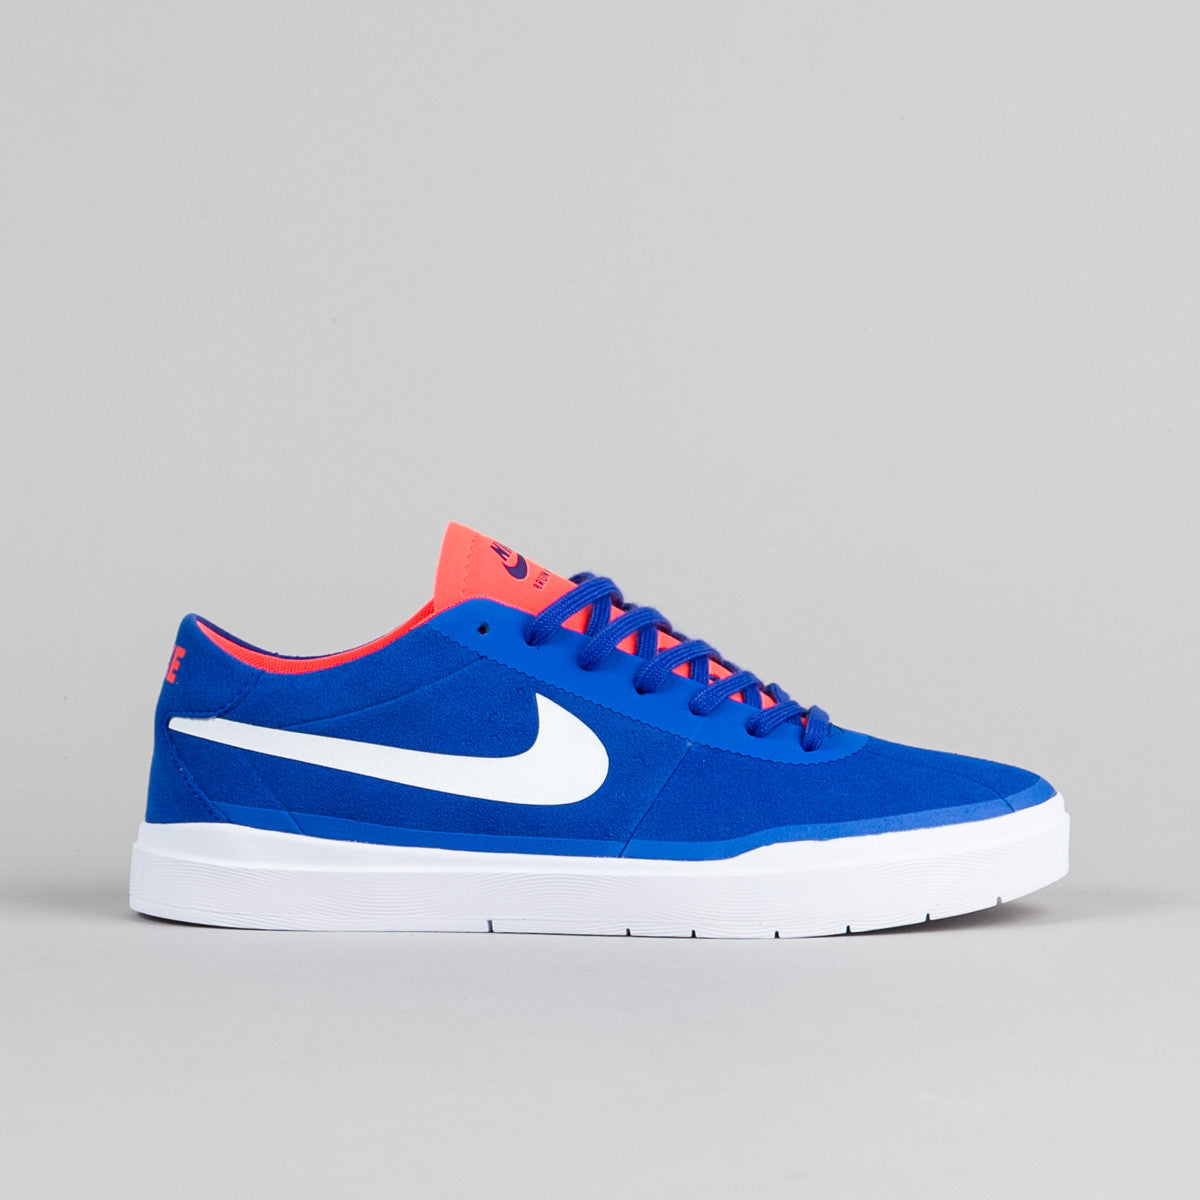 ... Nike SB Bruin Hyperfeel Shoes - Racer Blue / White - Total Crimson -  White ...